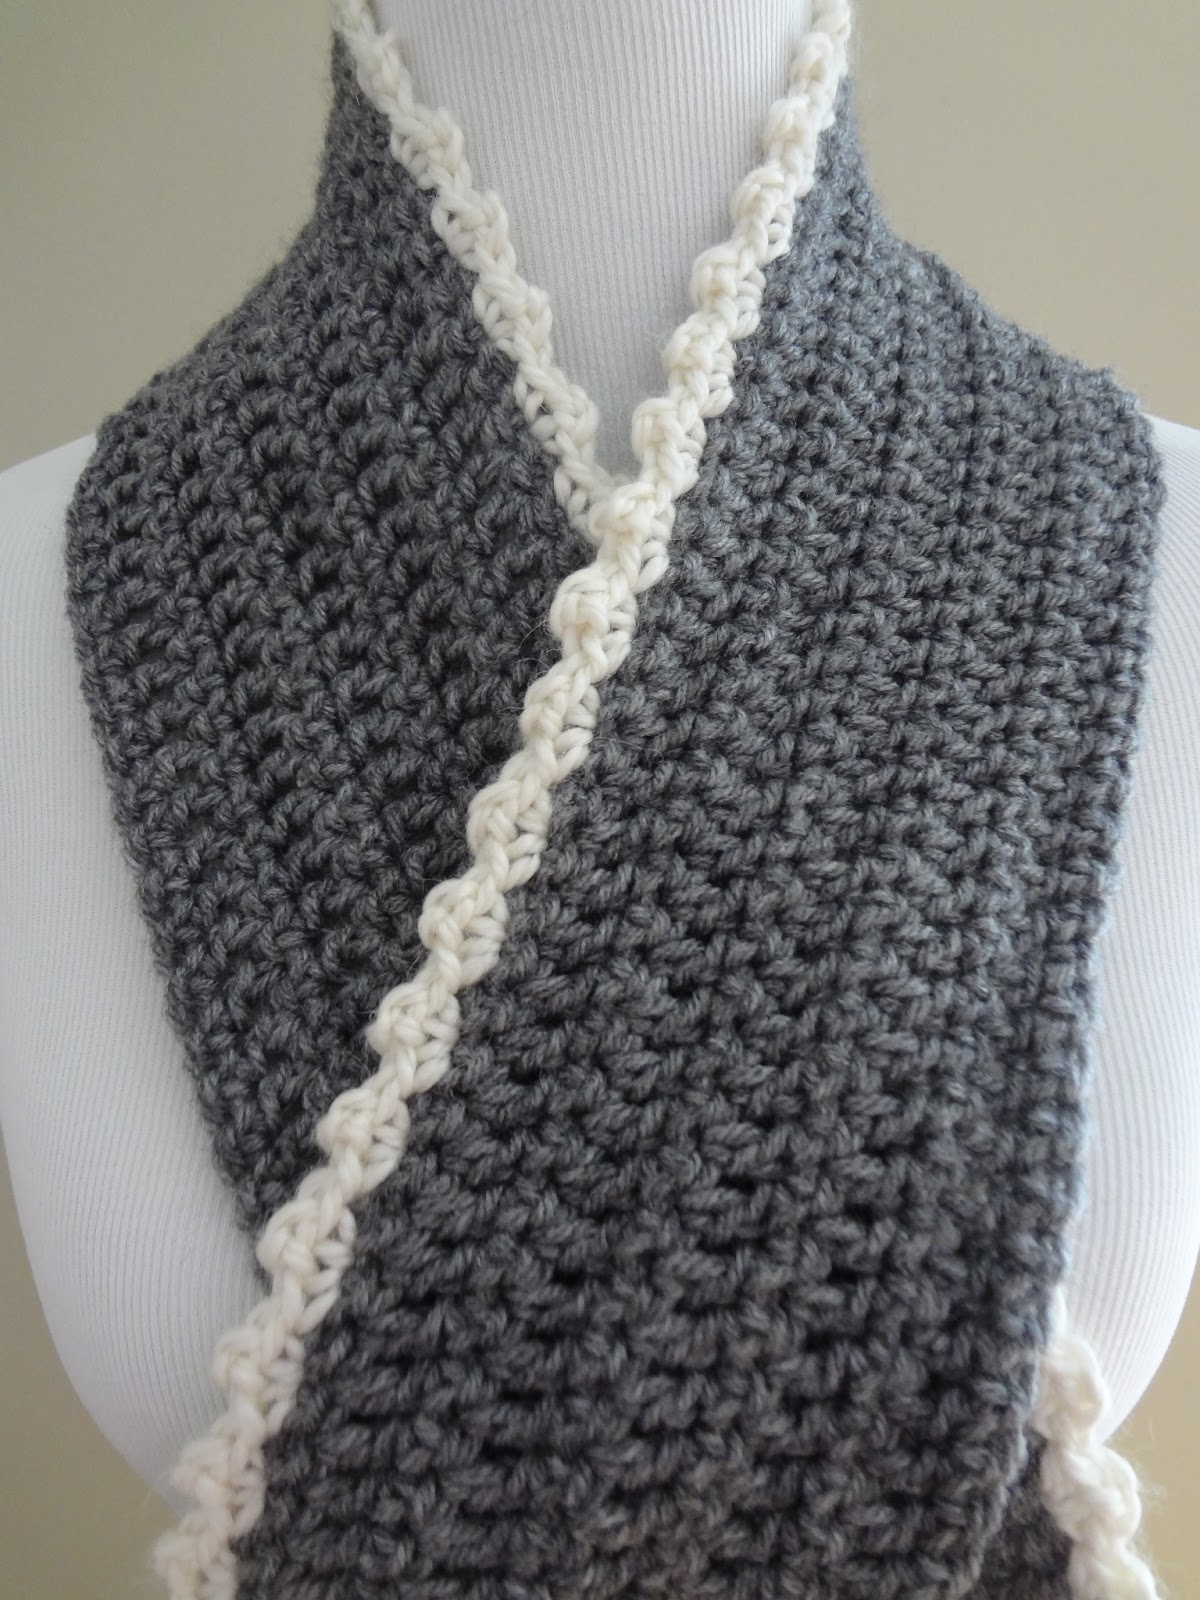 How To Crochet Scarfs : for scarf body make a chain that is the desired length of your scarf ...